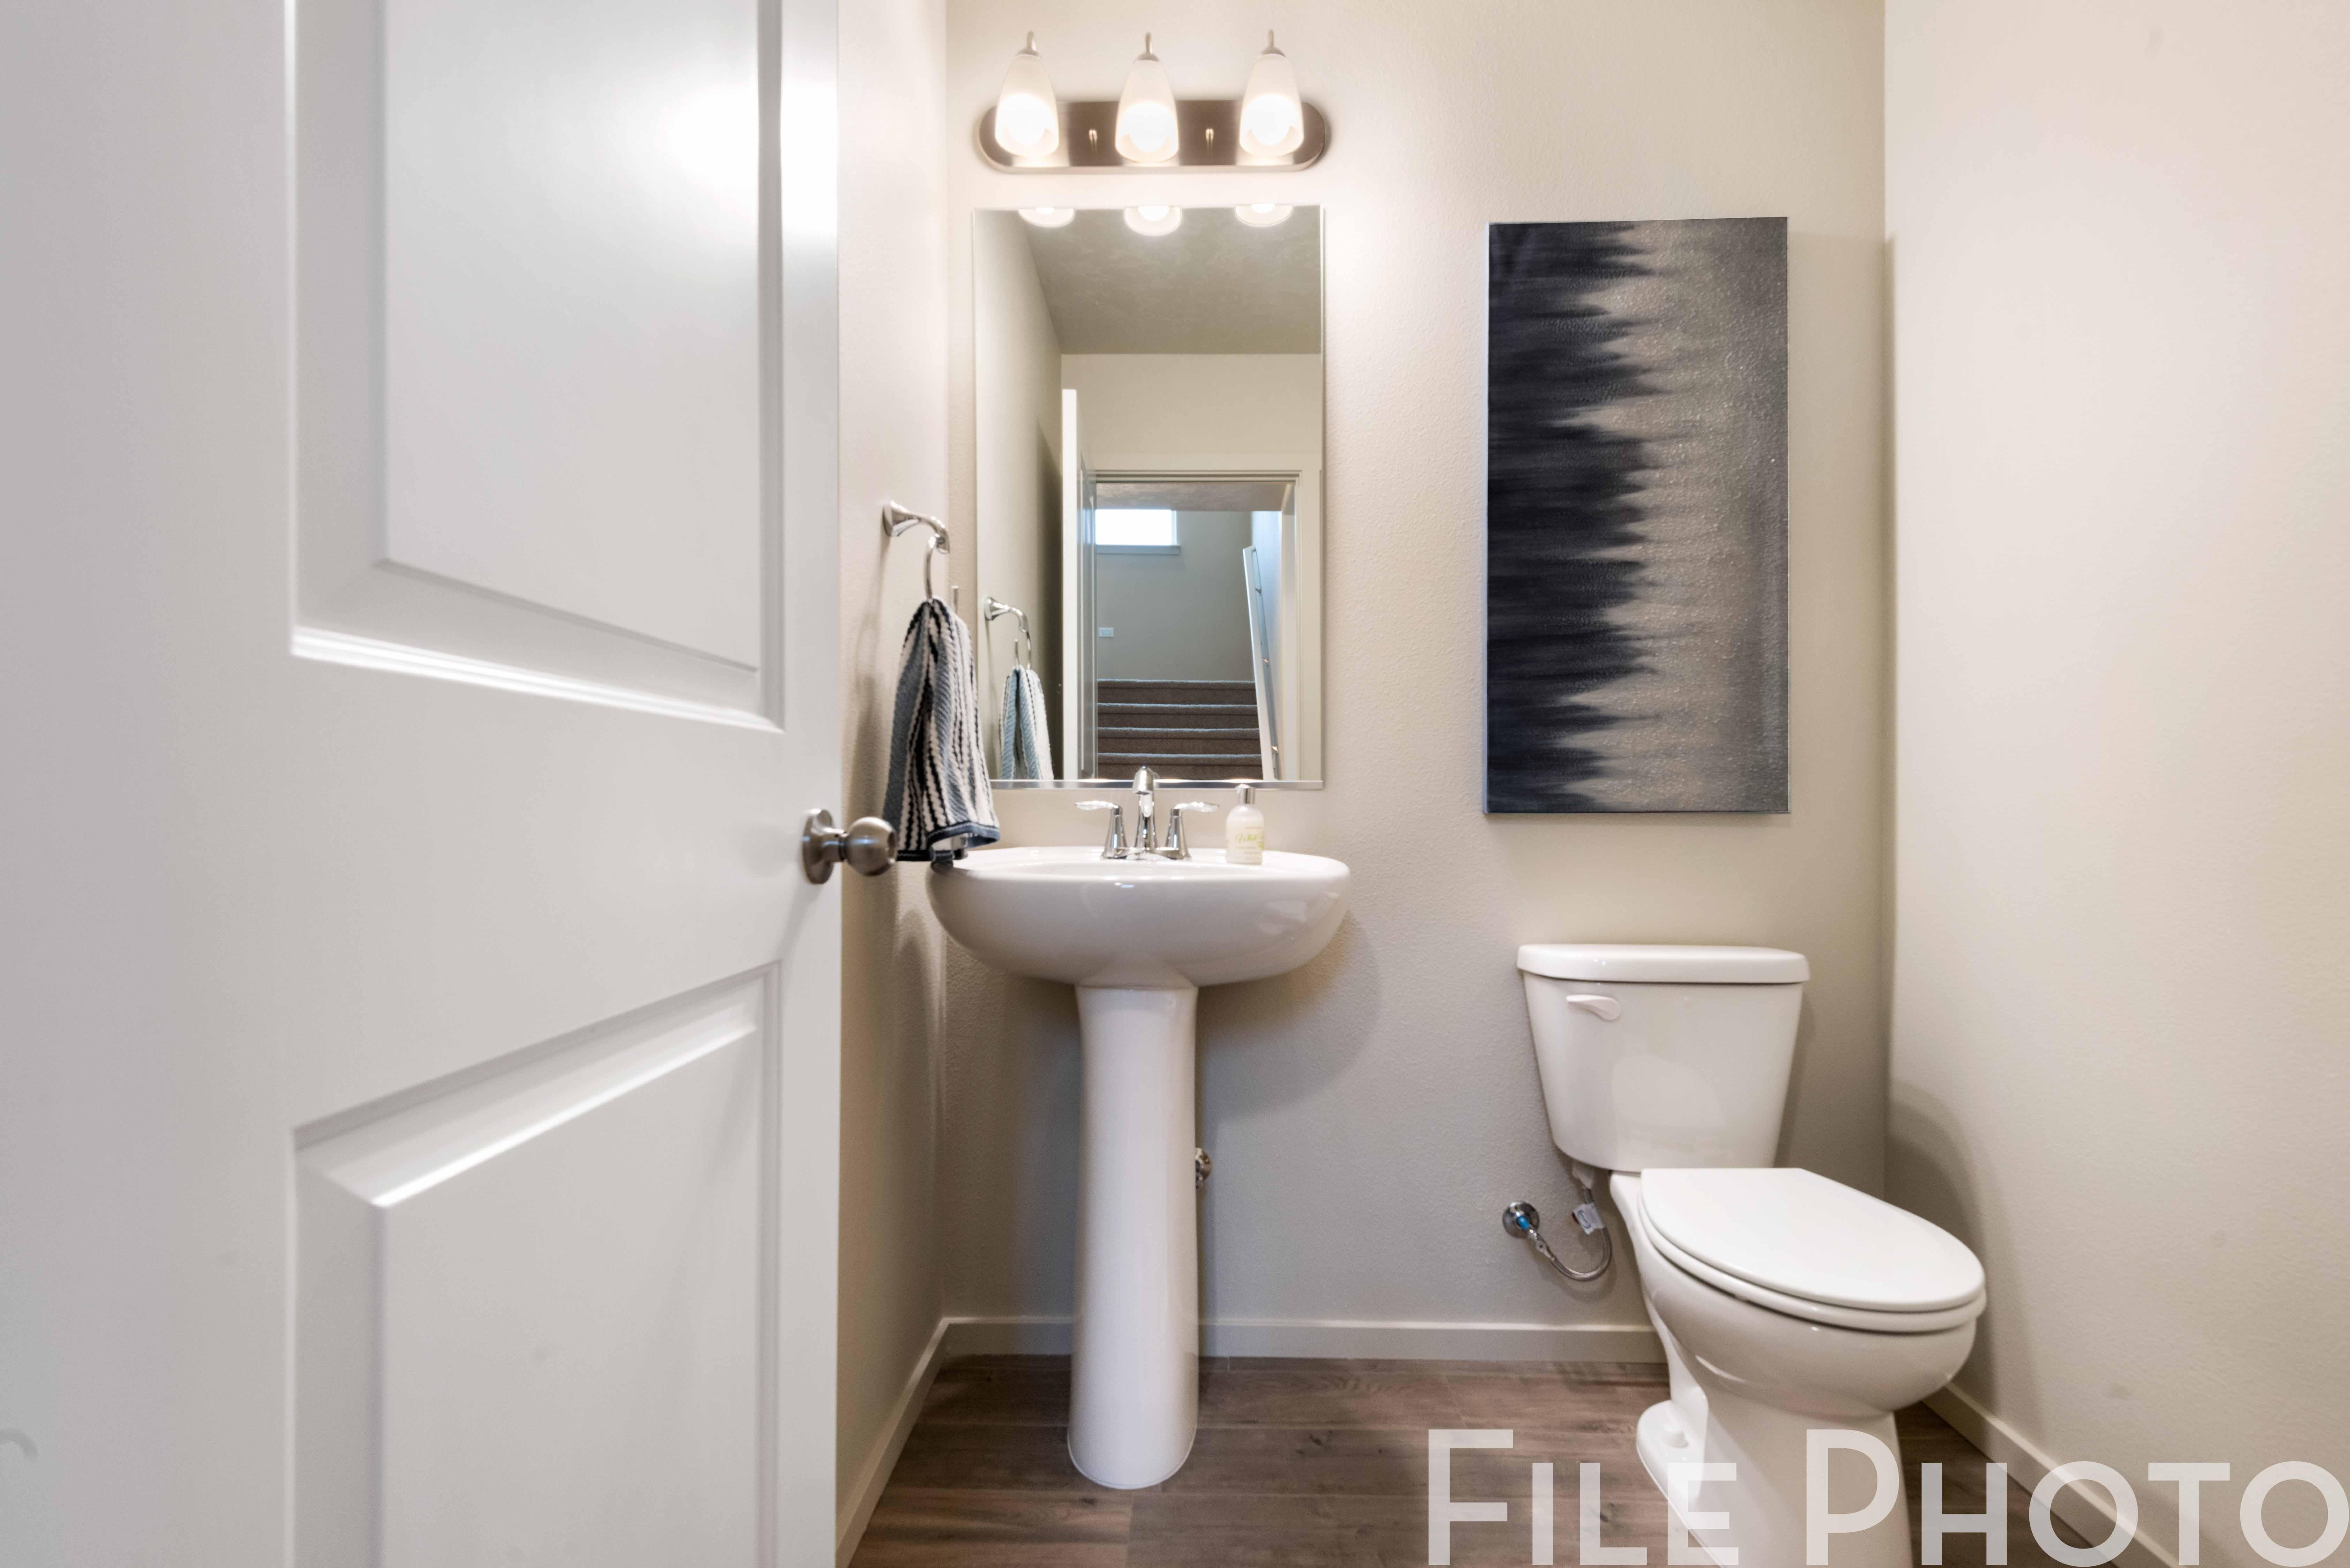 Bathroom featured in The Enclave By RYN Built Homes in Richland, WA